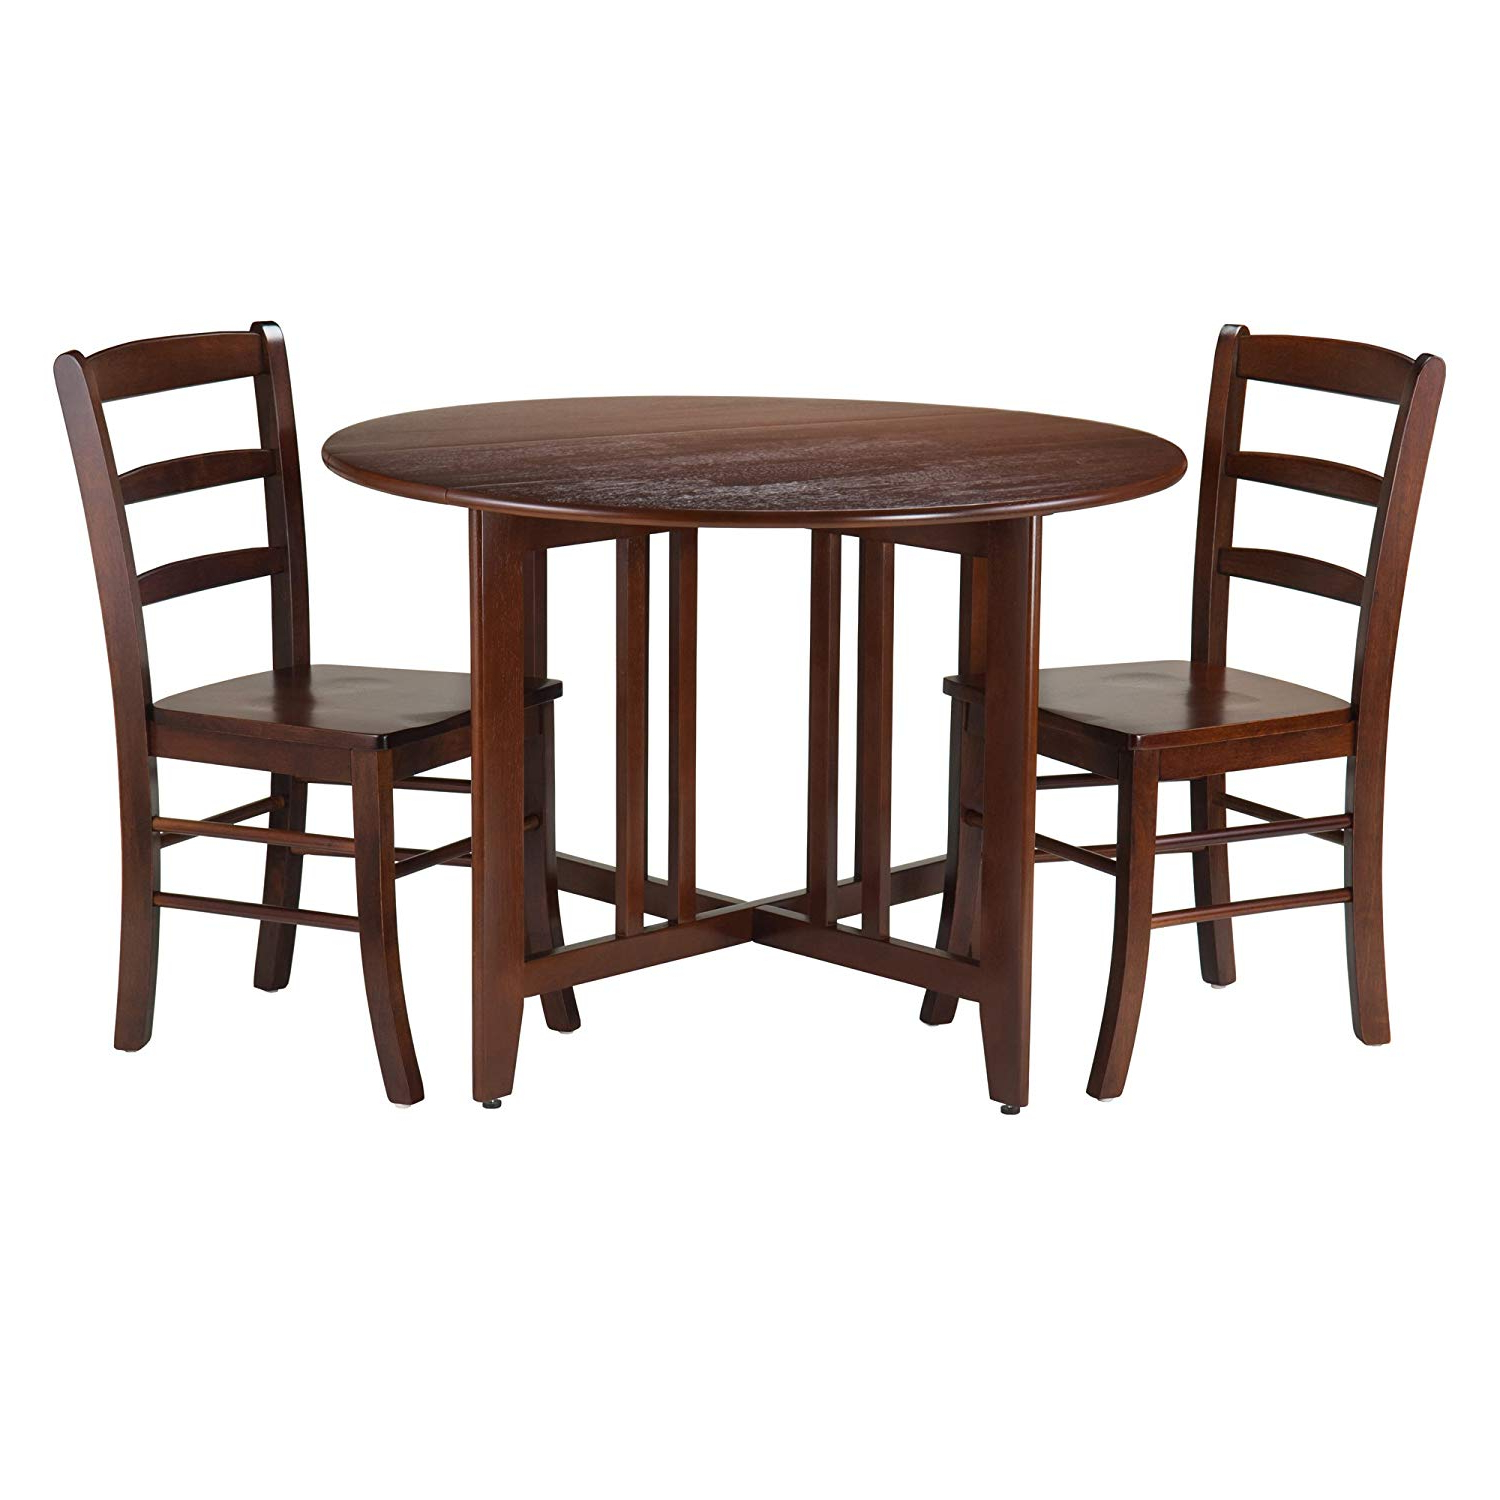 Alamo Transitional 4 Seating Double Drop Leaf Round Casual Dining Tables Within Best And Newest Winsome 3 Piece Alamo Round Drop Leaf Table With 2 Ladder Back Chairs, Brown (View 11 of 26)